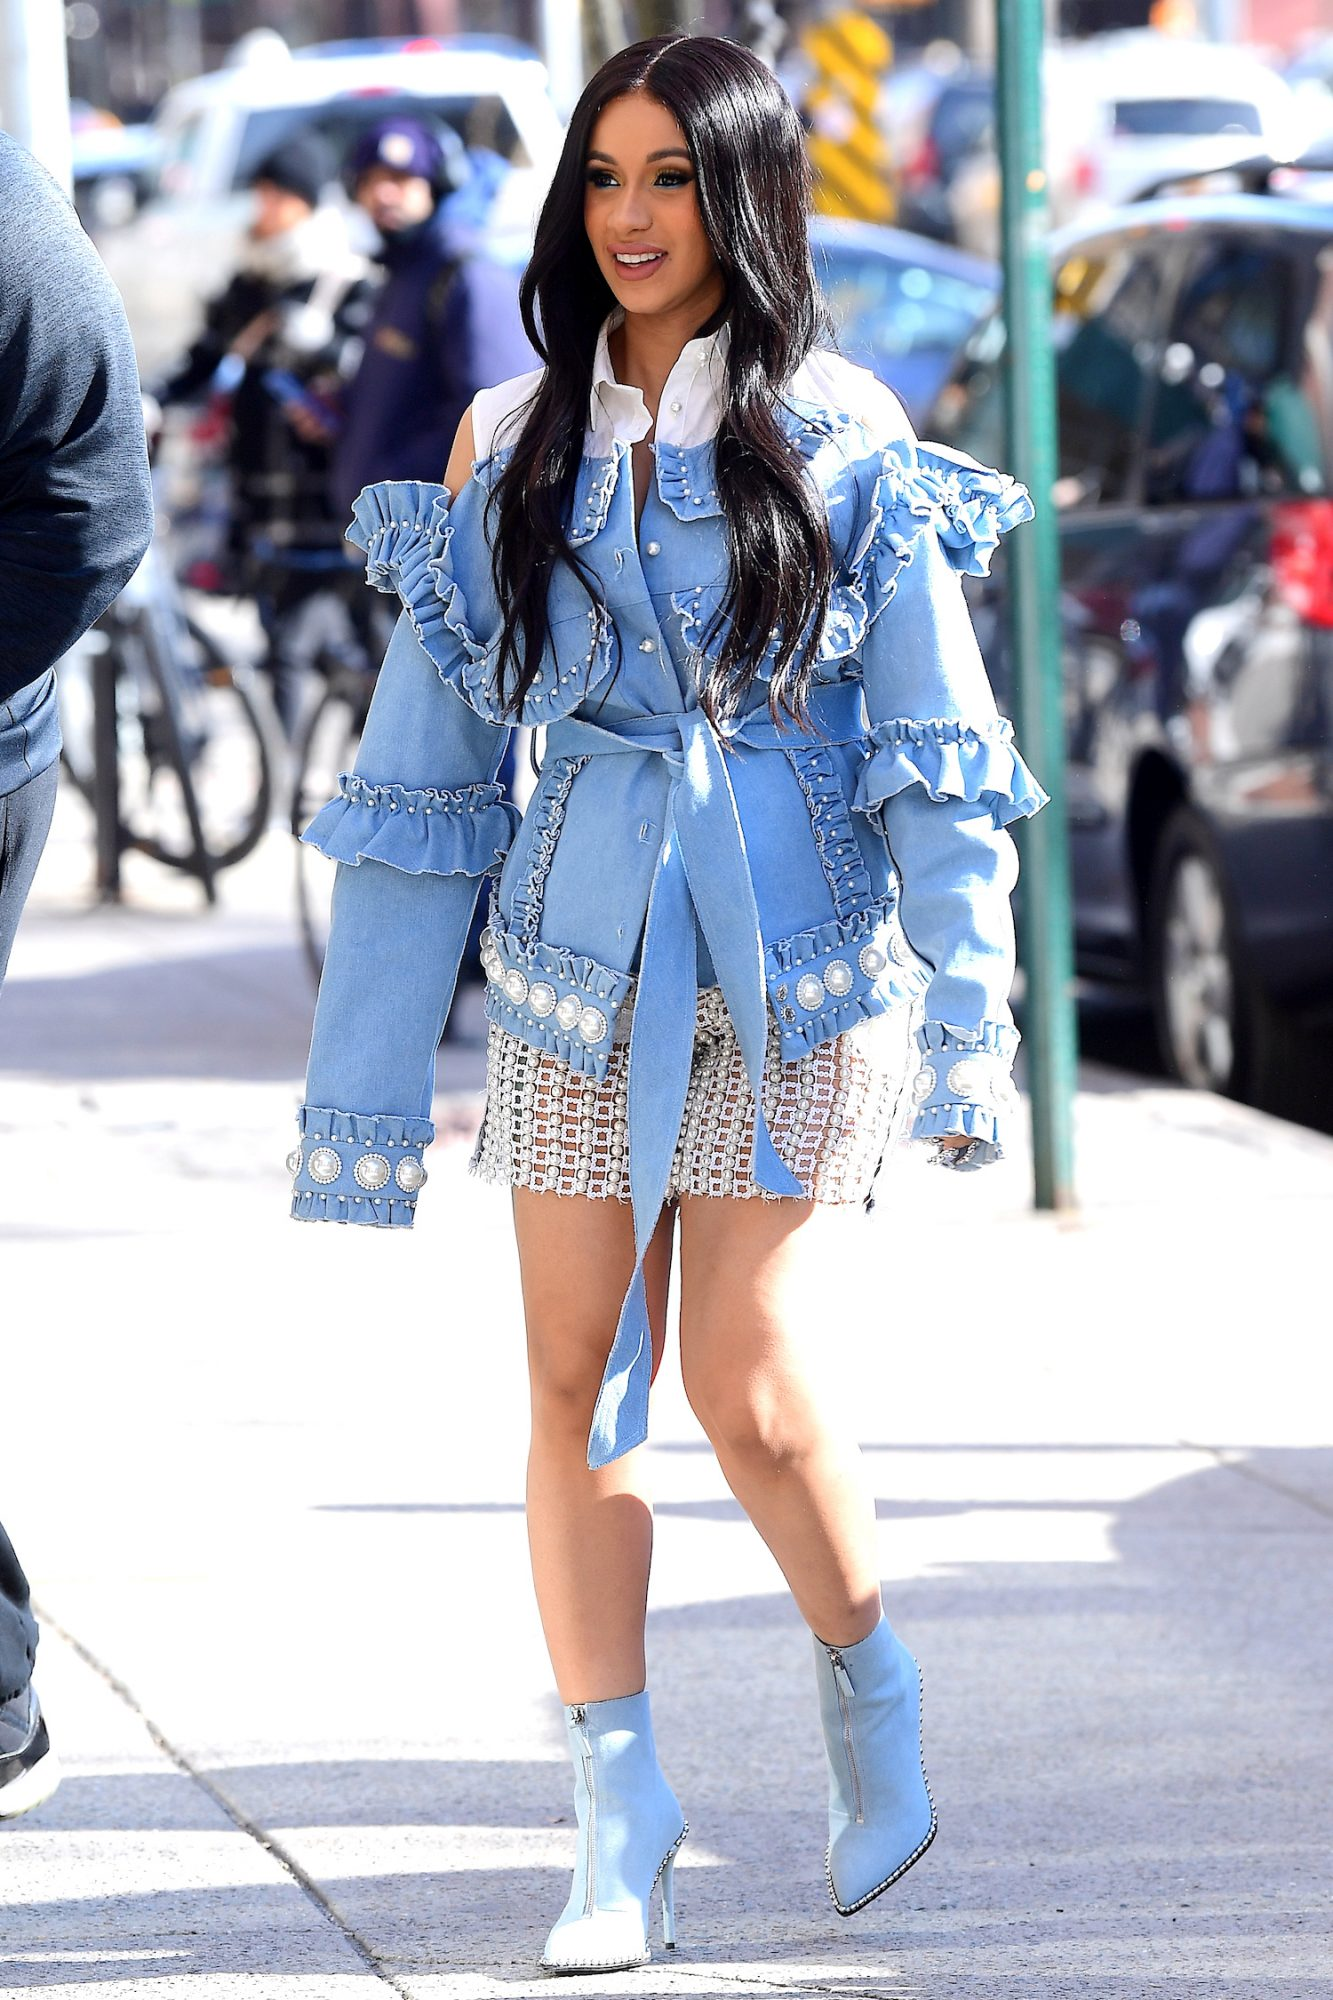 Pregnant Cardi B's Maternity Style Now Includes See-Through Pearl Shorts